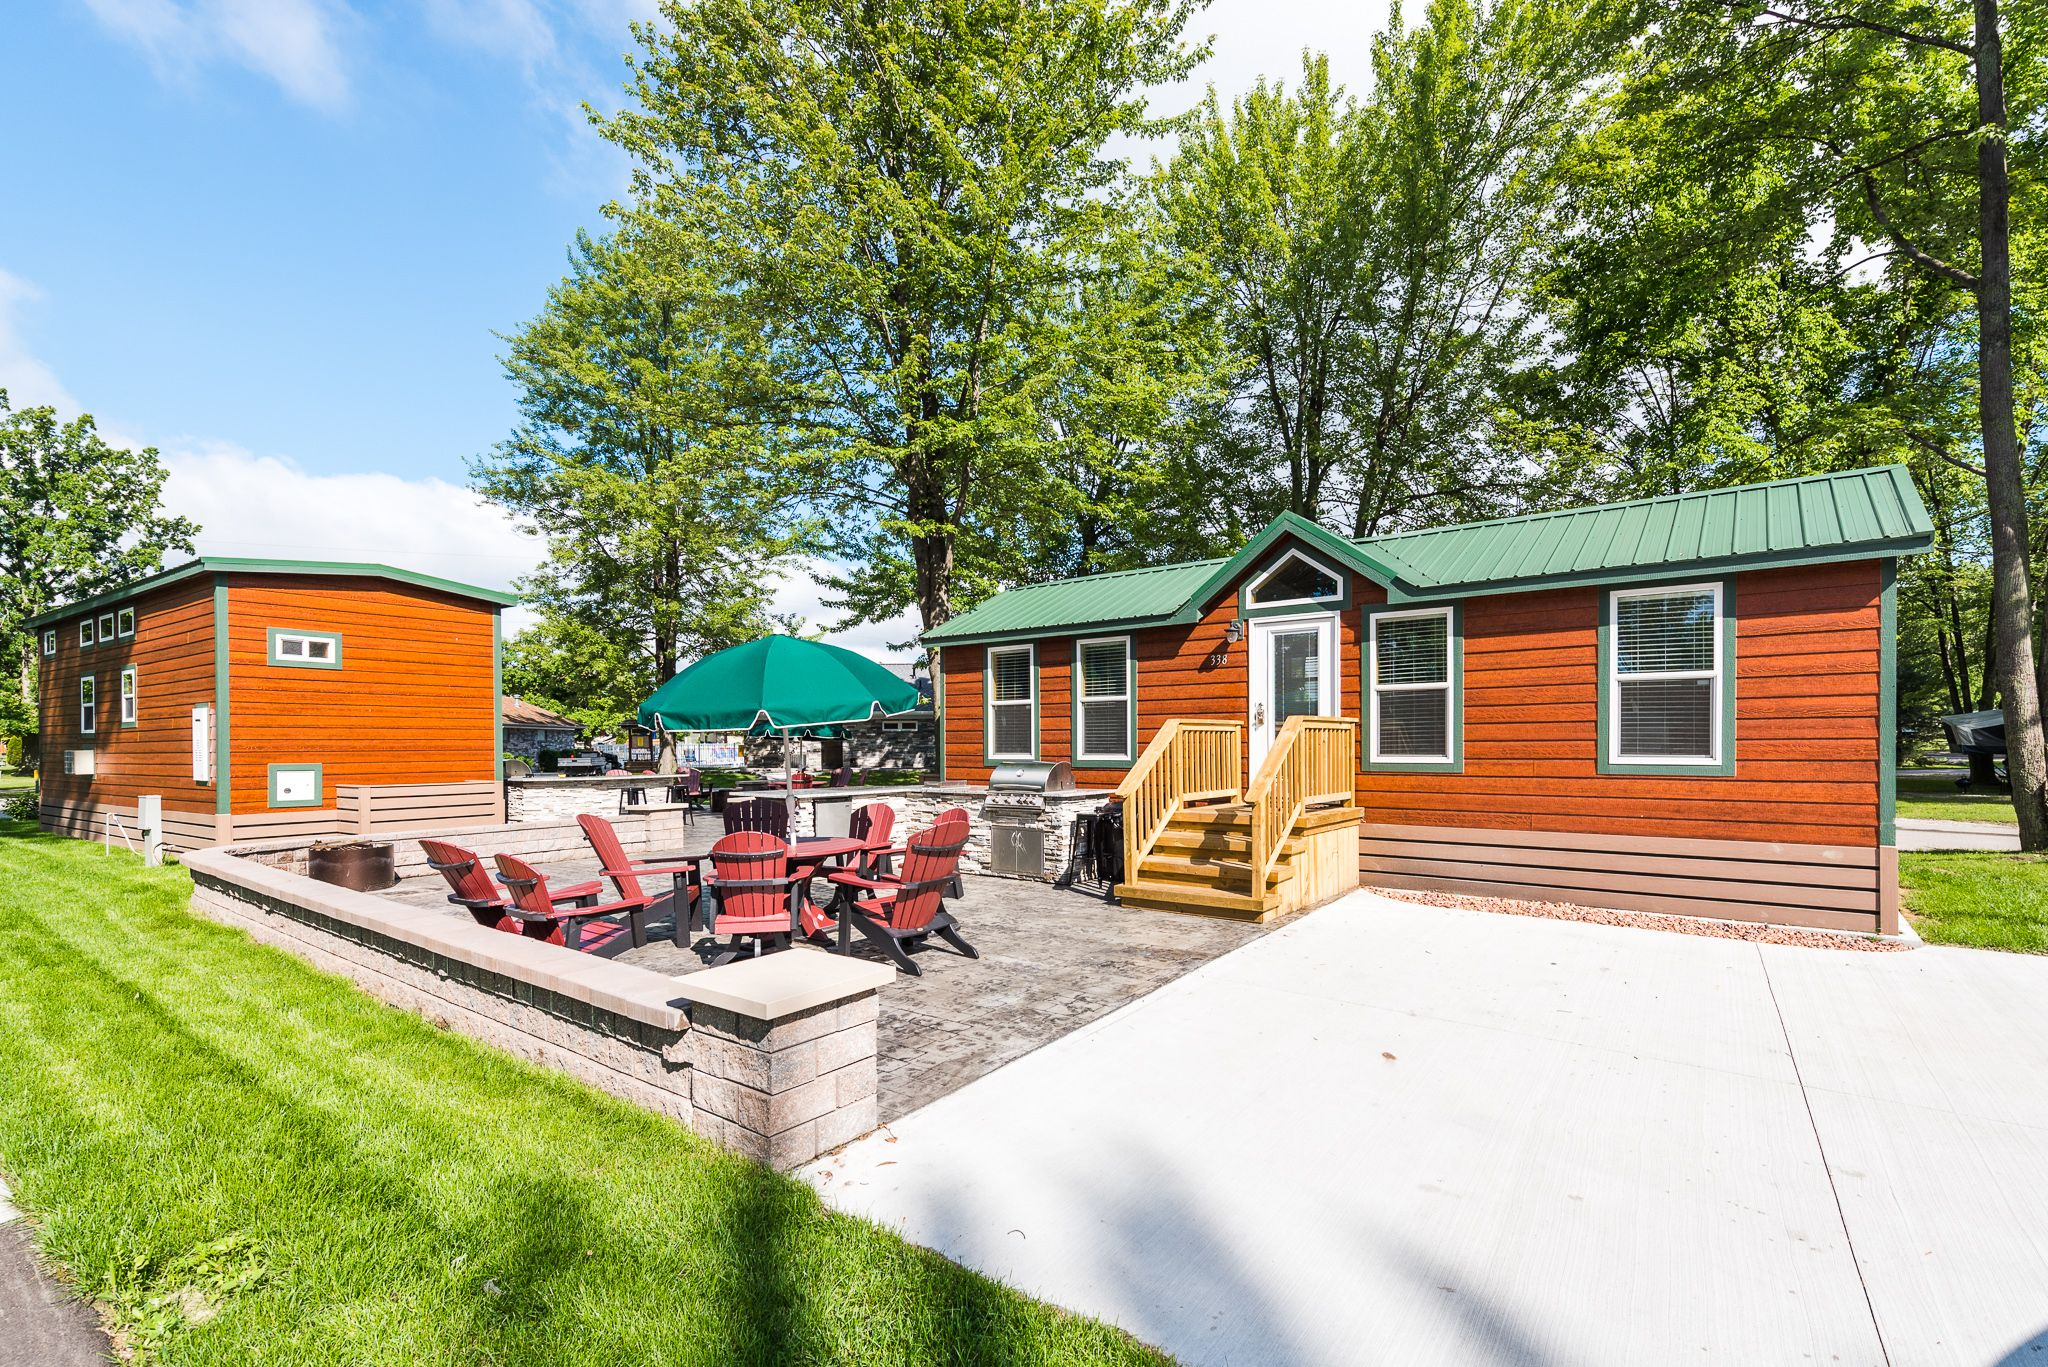 Amazing Outdoor Experience Complete With A Private Patio Space And Outdoor Kitchen At The Port Huron Koa Resort Michigan Campgrounds Port Huron Patio